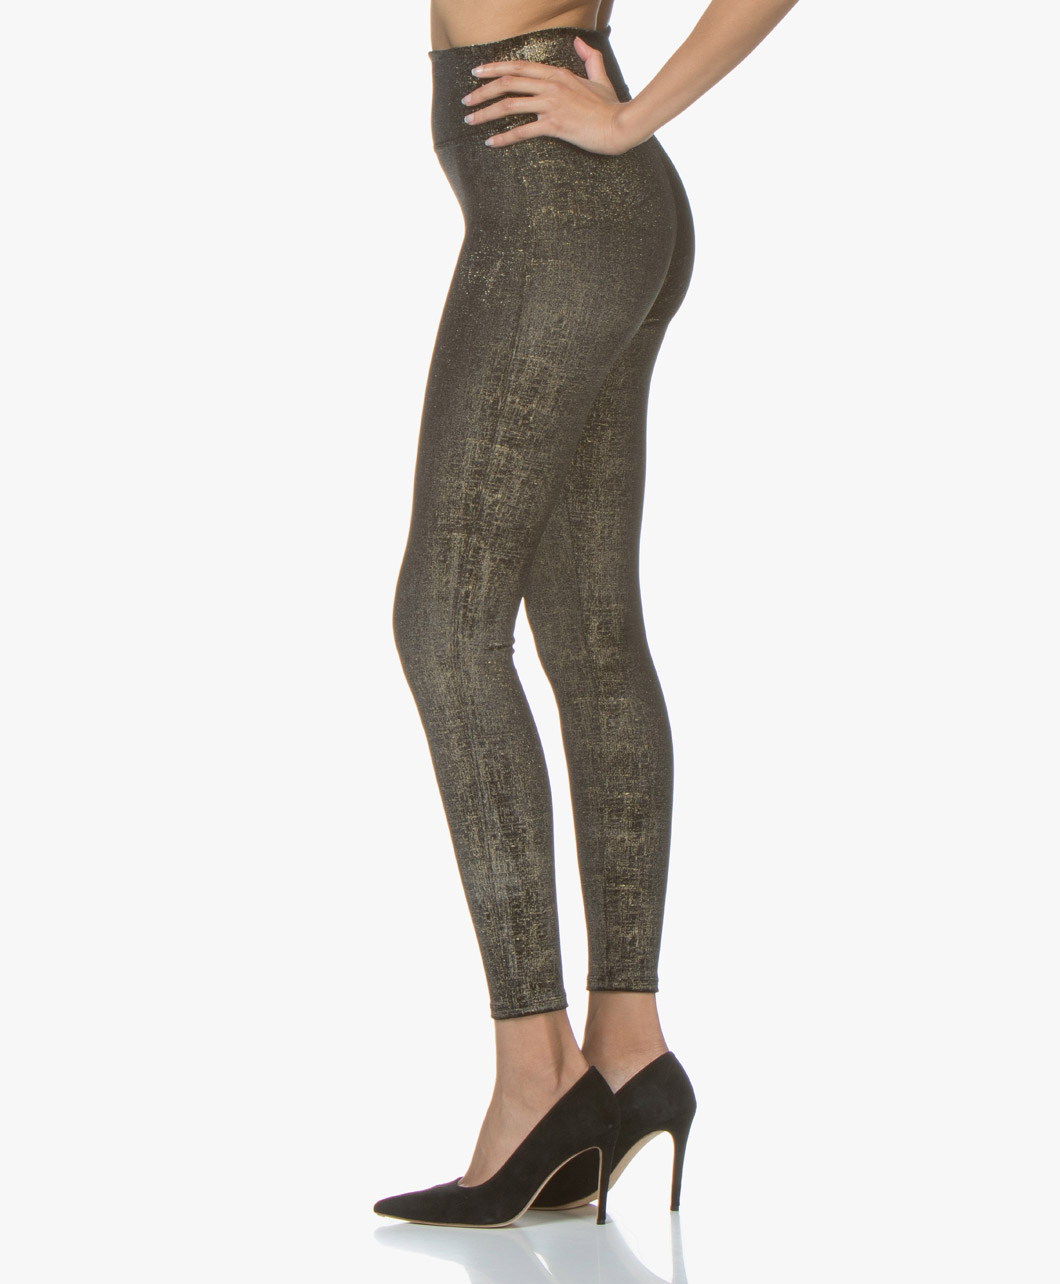 4d92223f3de9cb SPANX® Velvet Shine Leggings - Black/Gold - spx 20188r 0930